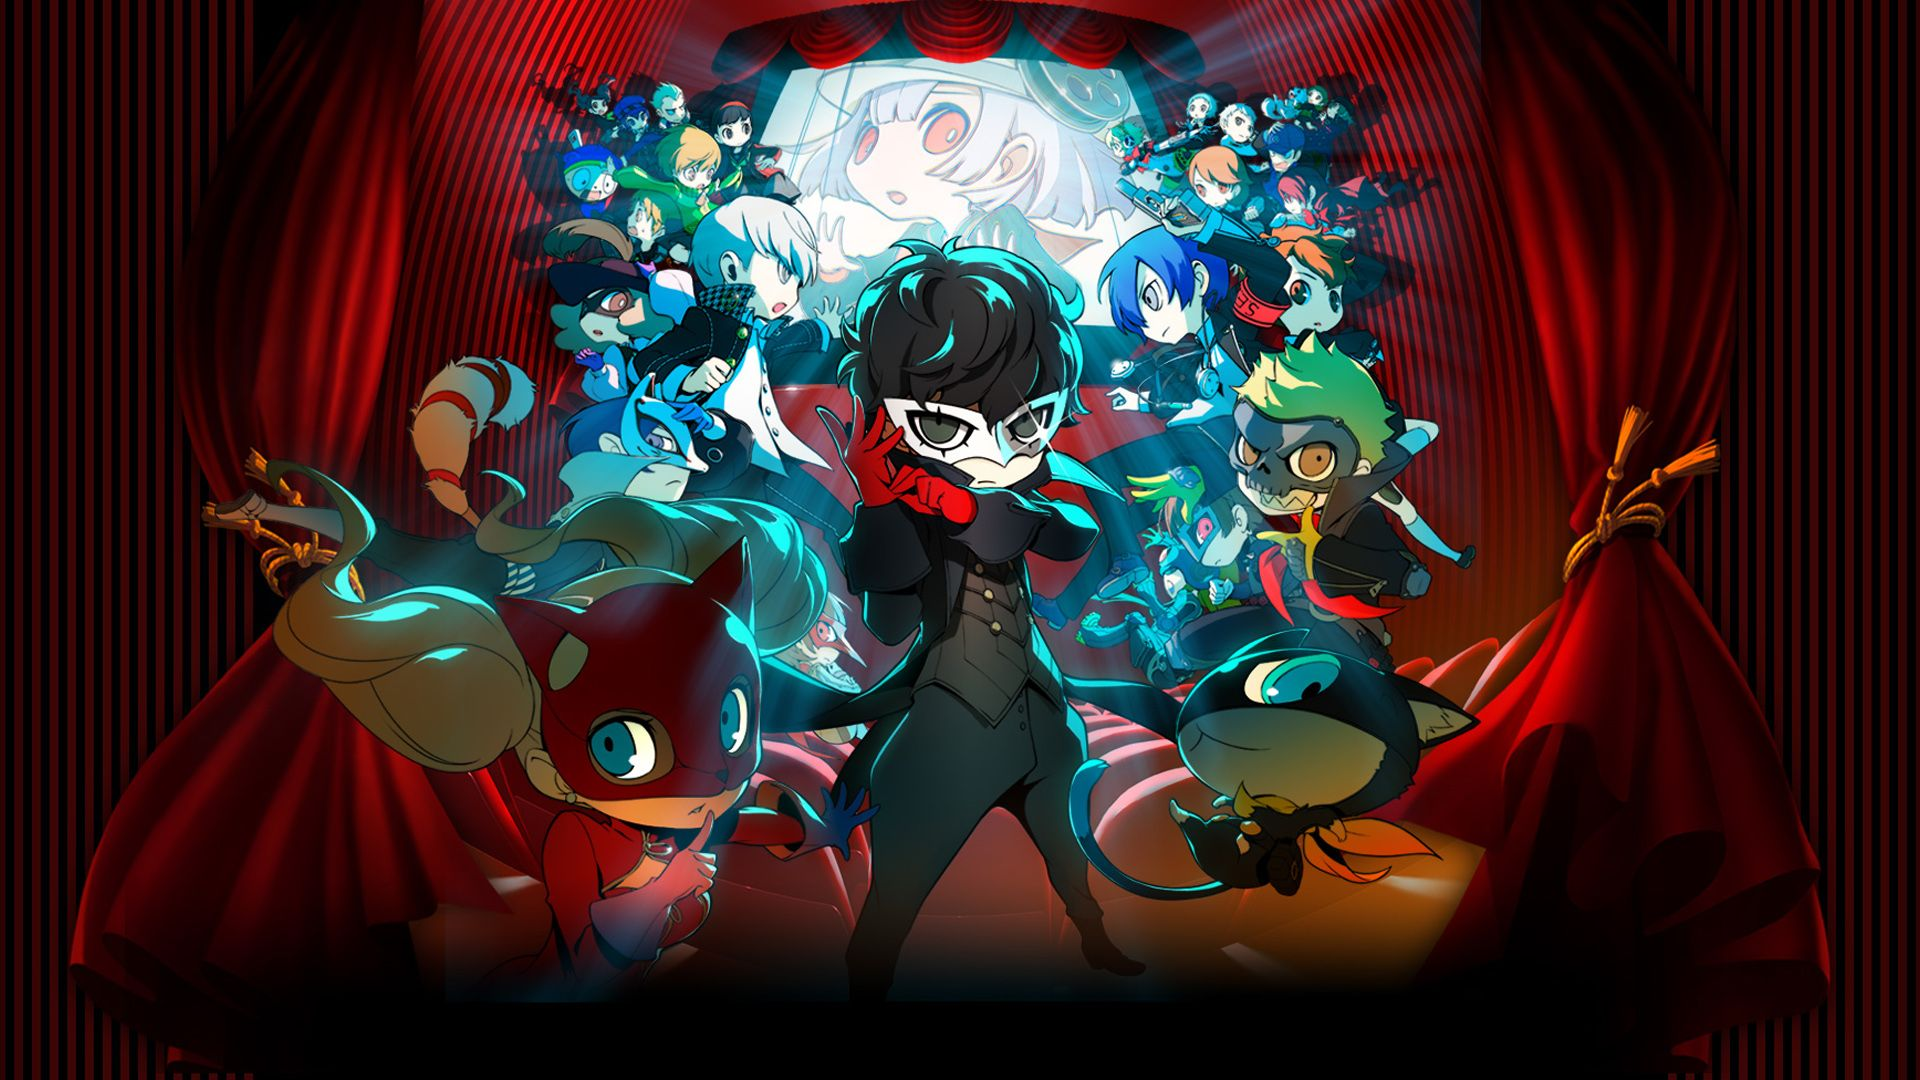 Full Persona Q2 Trailer And Official Artwork Released With Images Persona Q New Cinema Persona